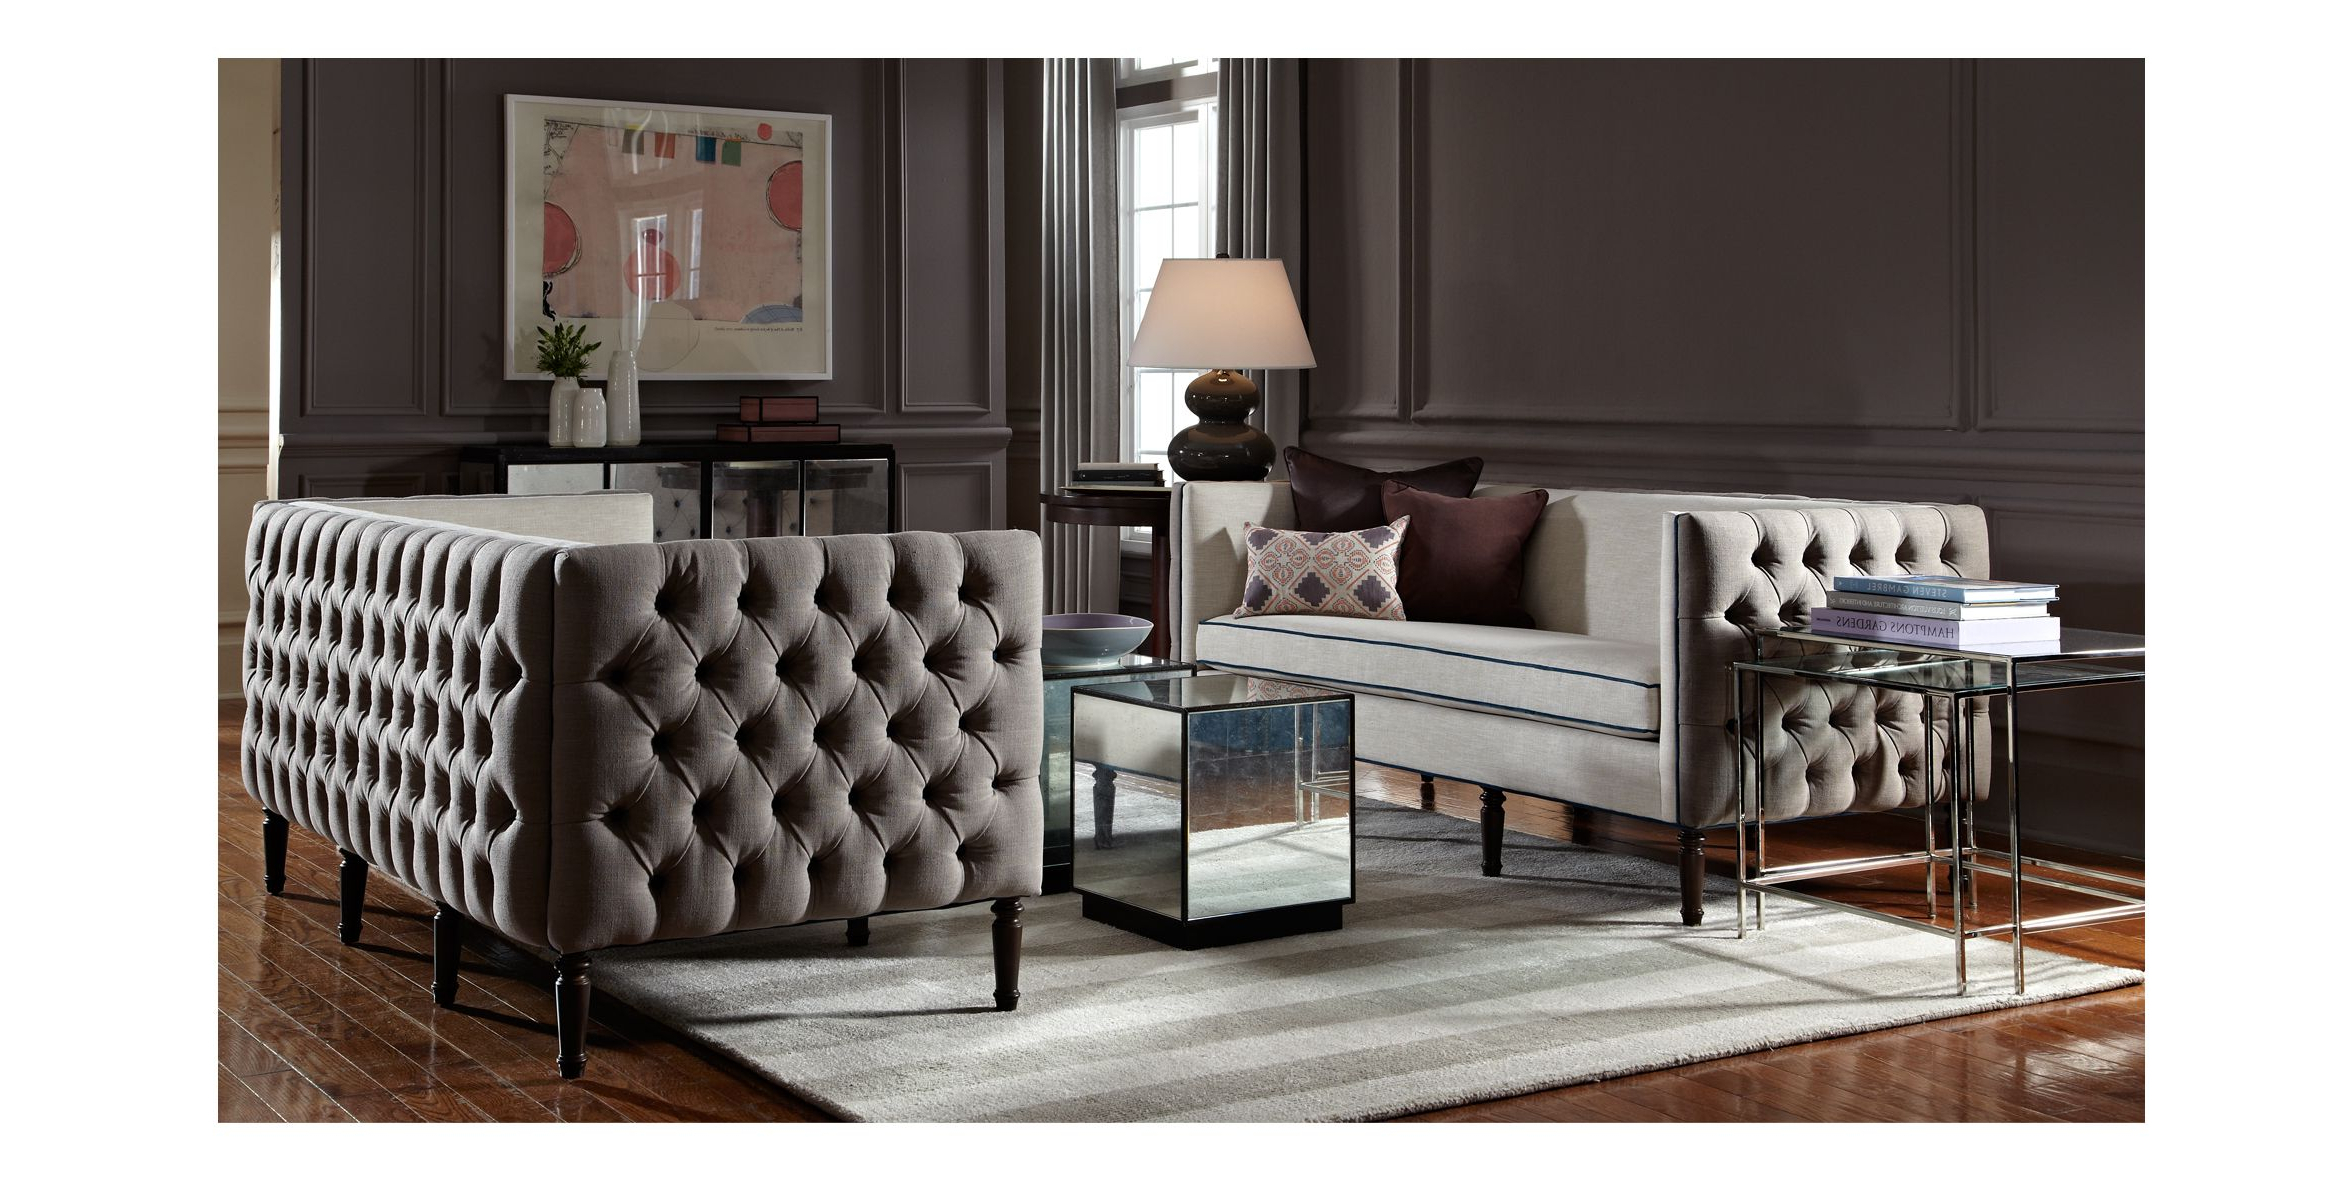 Modern Tufted Sofa – Google Search | Turn Of The Century Moderne Inside Parsons Grey Solid Surface Top & Brass Base 48X16 Console Tables (View 12 of 19)